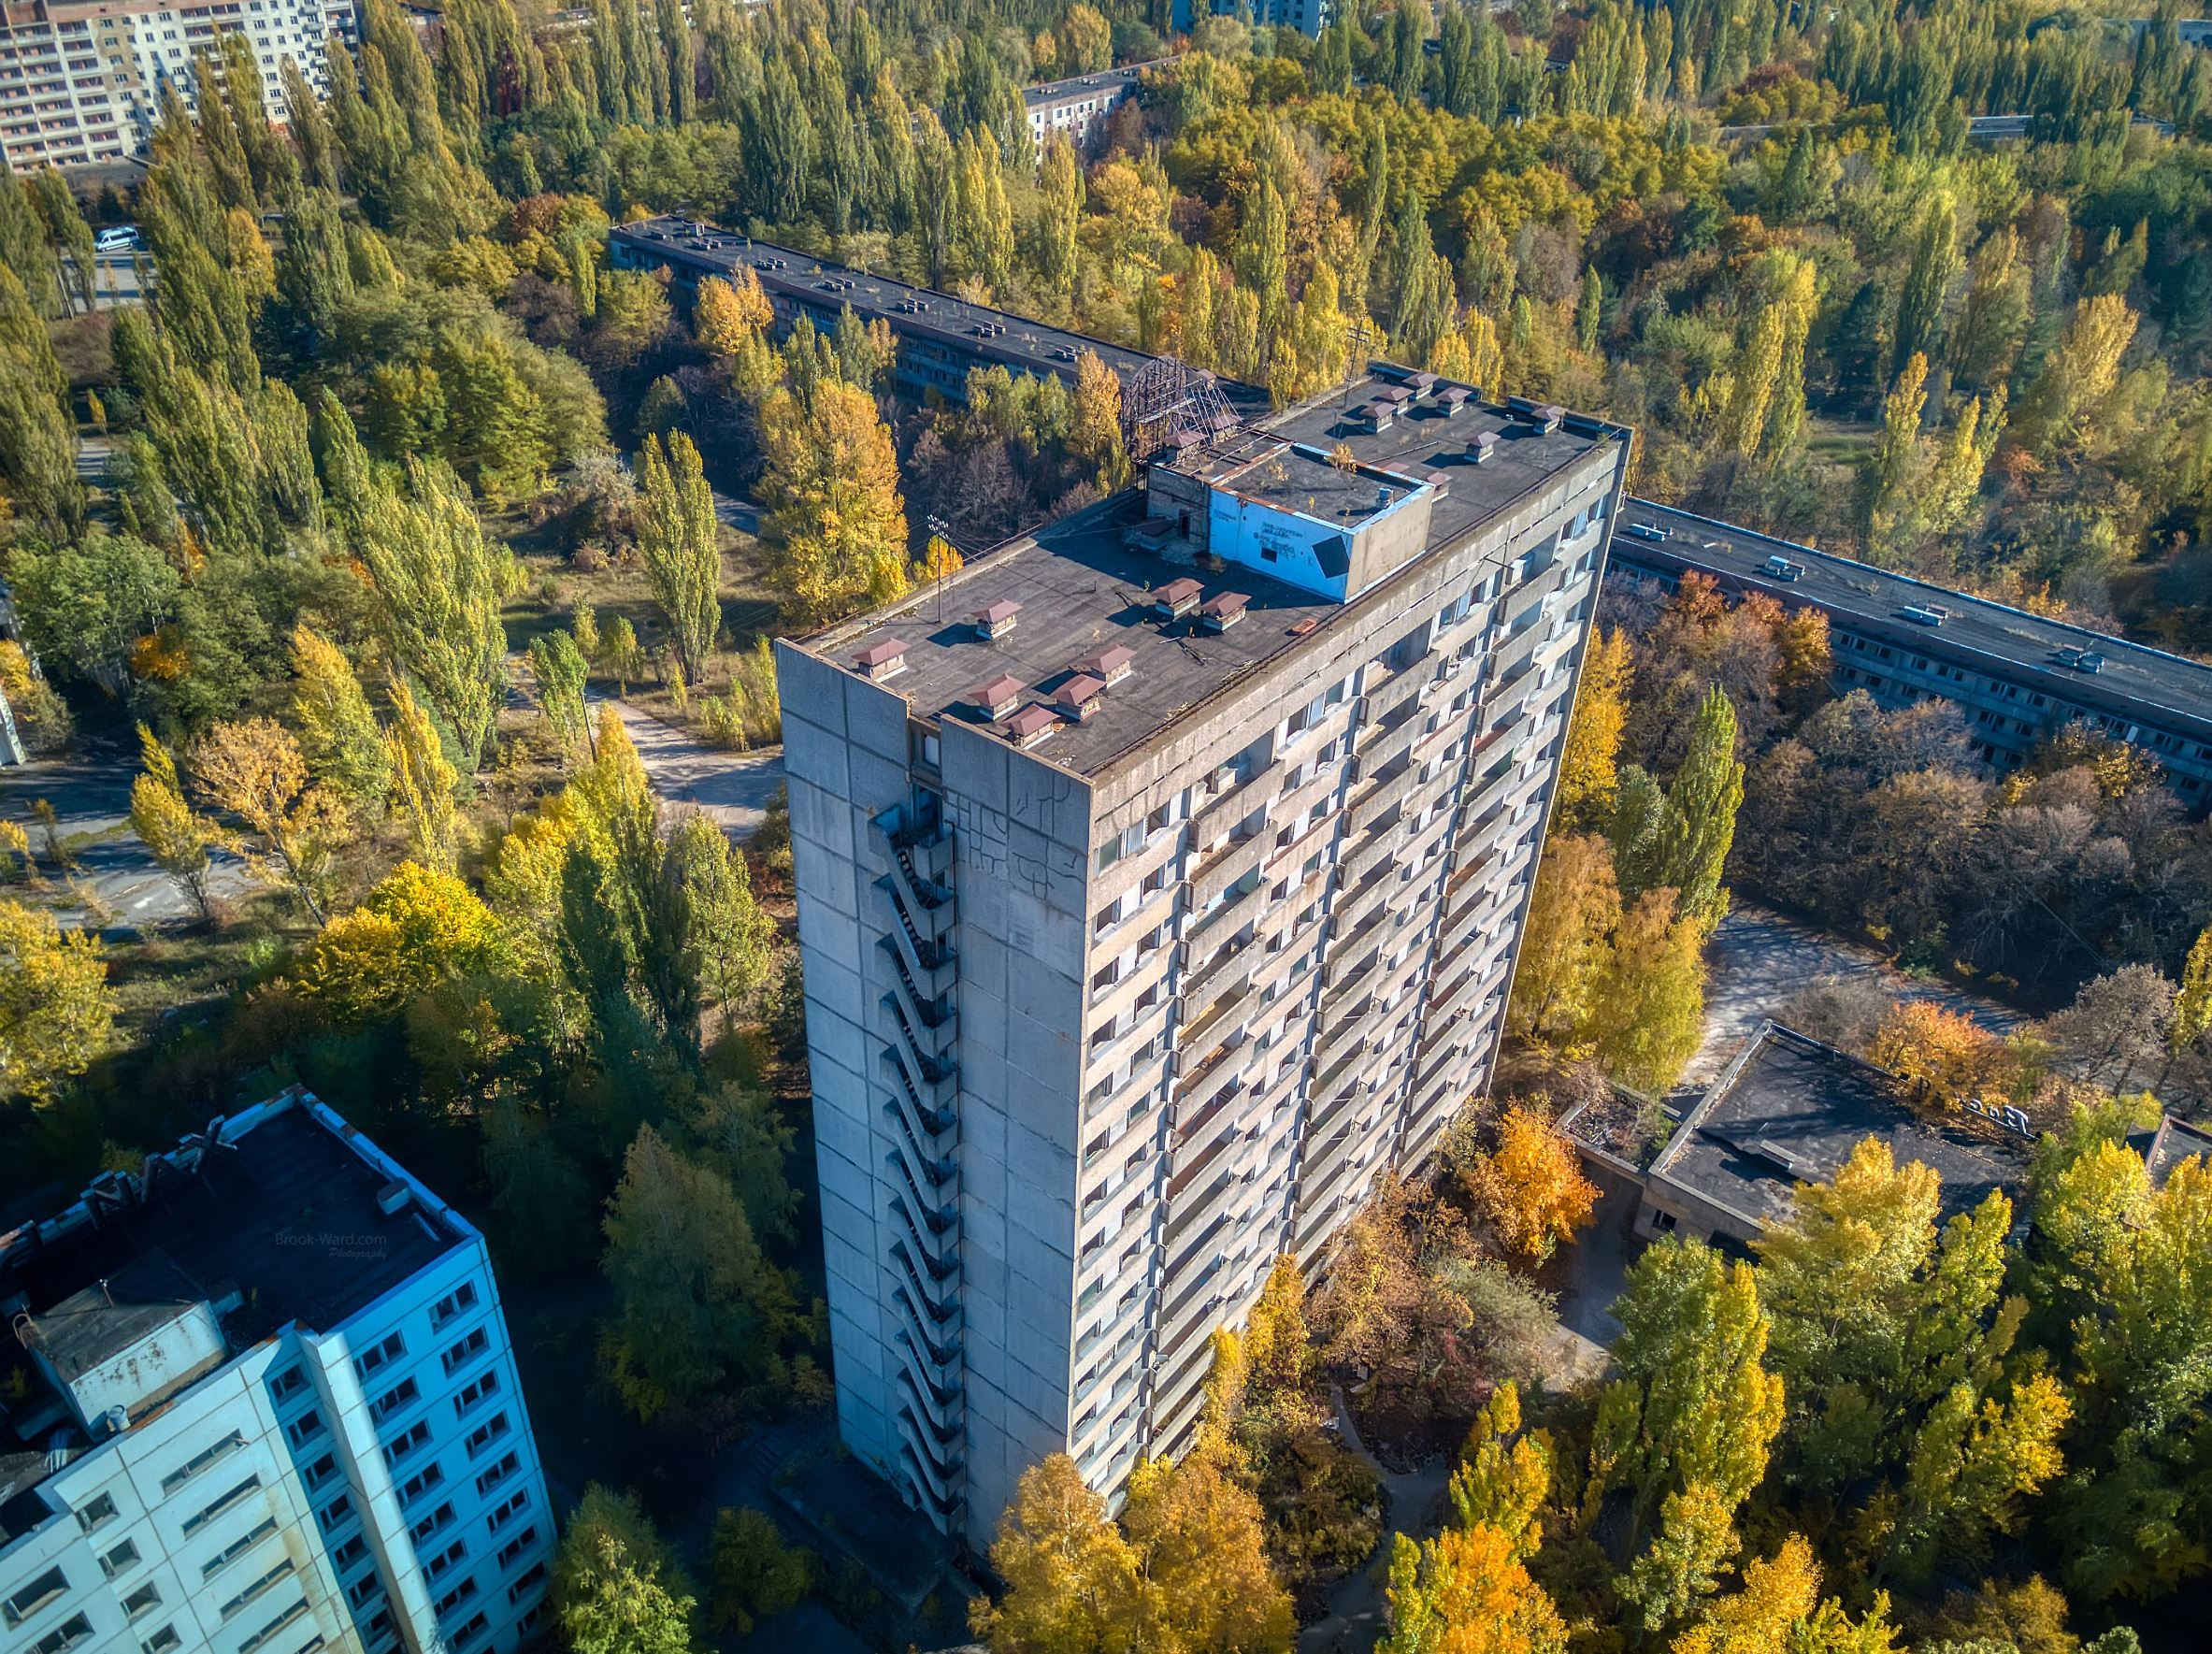 Pripyat Apartment Building